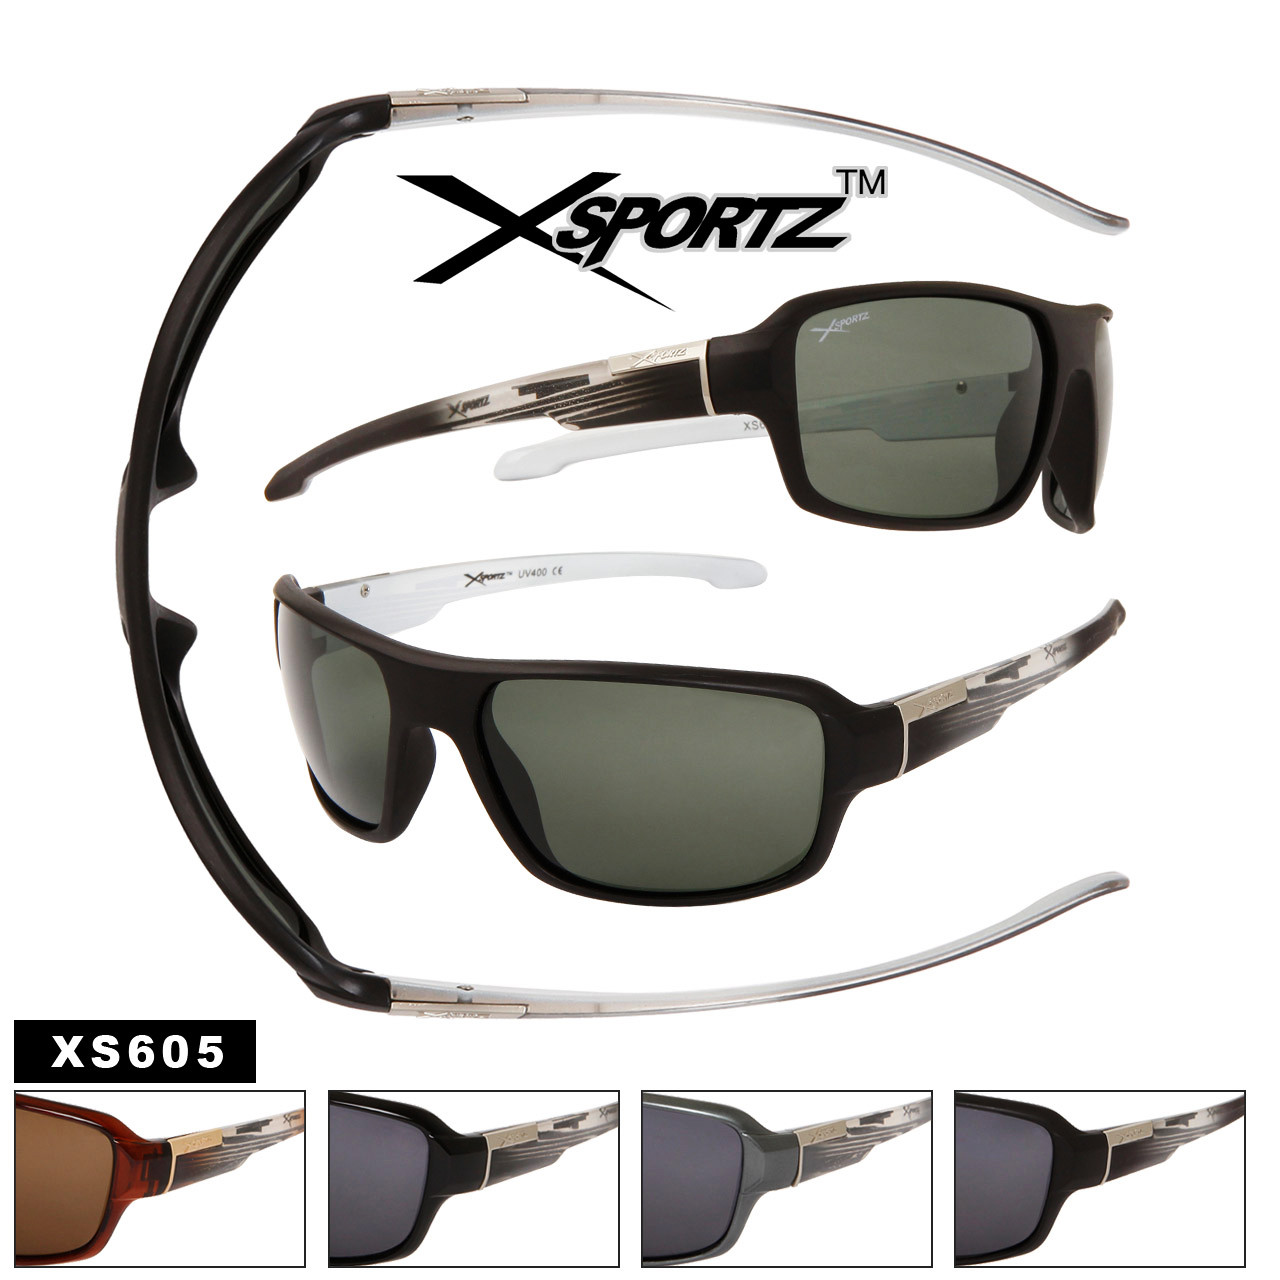 Polarized Xsportz™ Sunglasses XS605